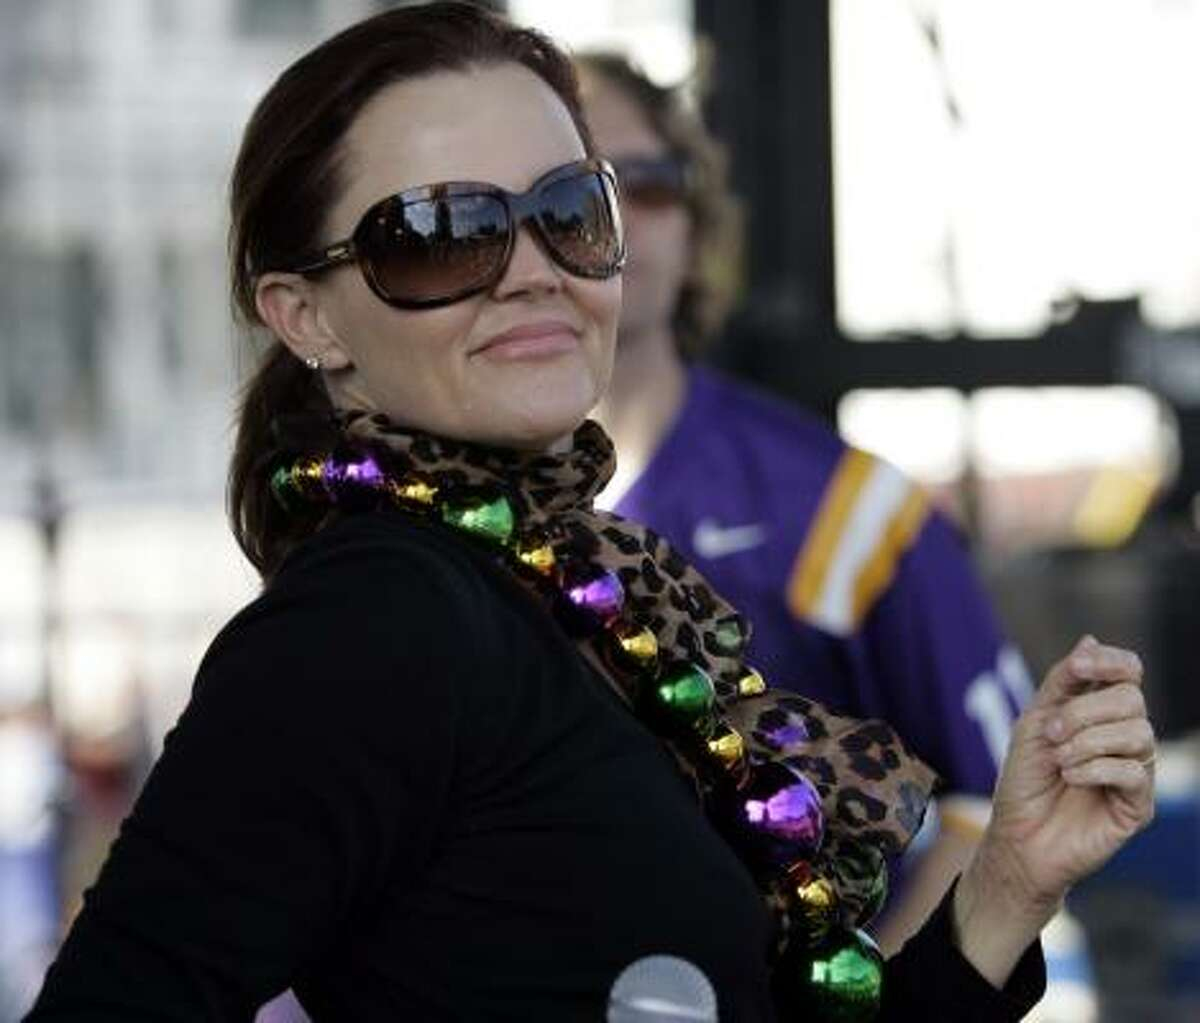 NutriSystem recently announced Belinda Carlisle is the newest member of the brand's celebrity roster list. Carlisle plans to shed 20 pounds before her 50th birthday, according to the company.